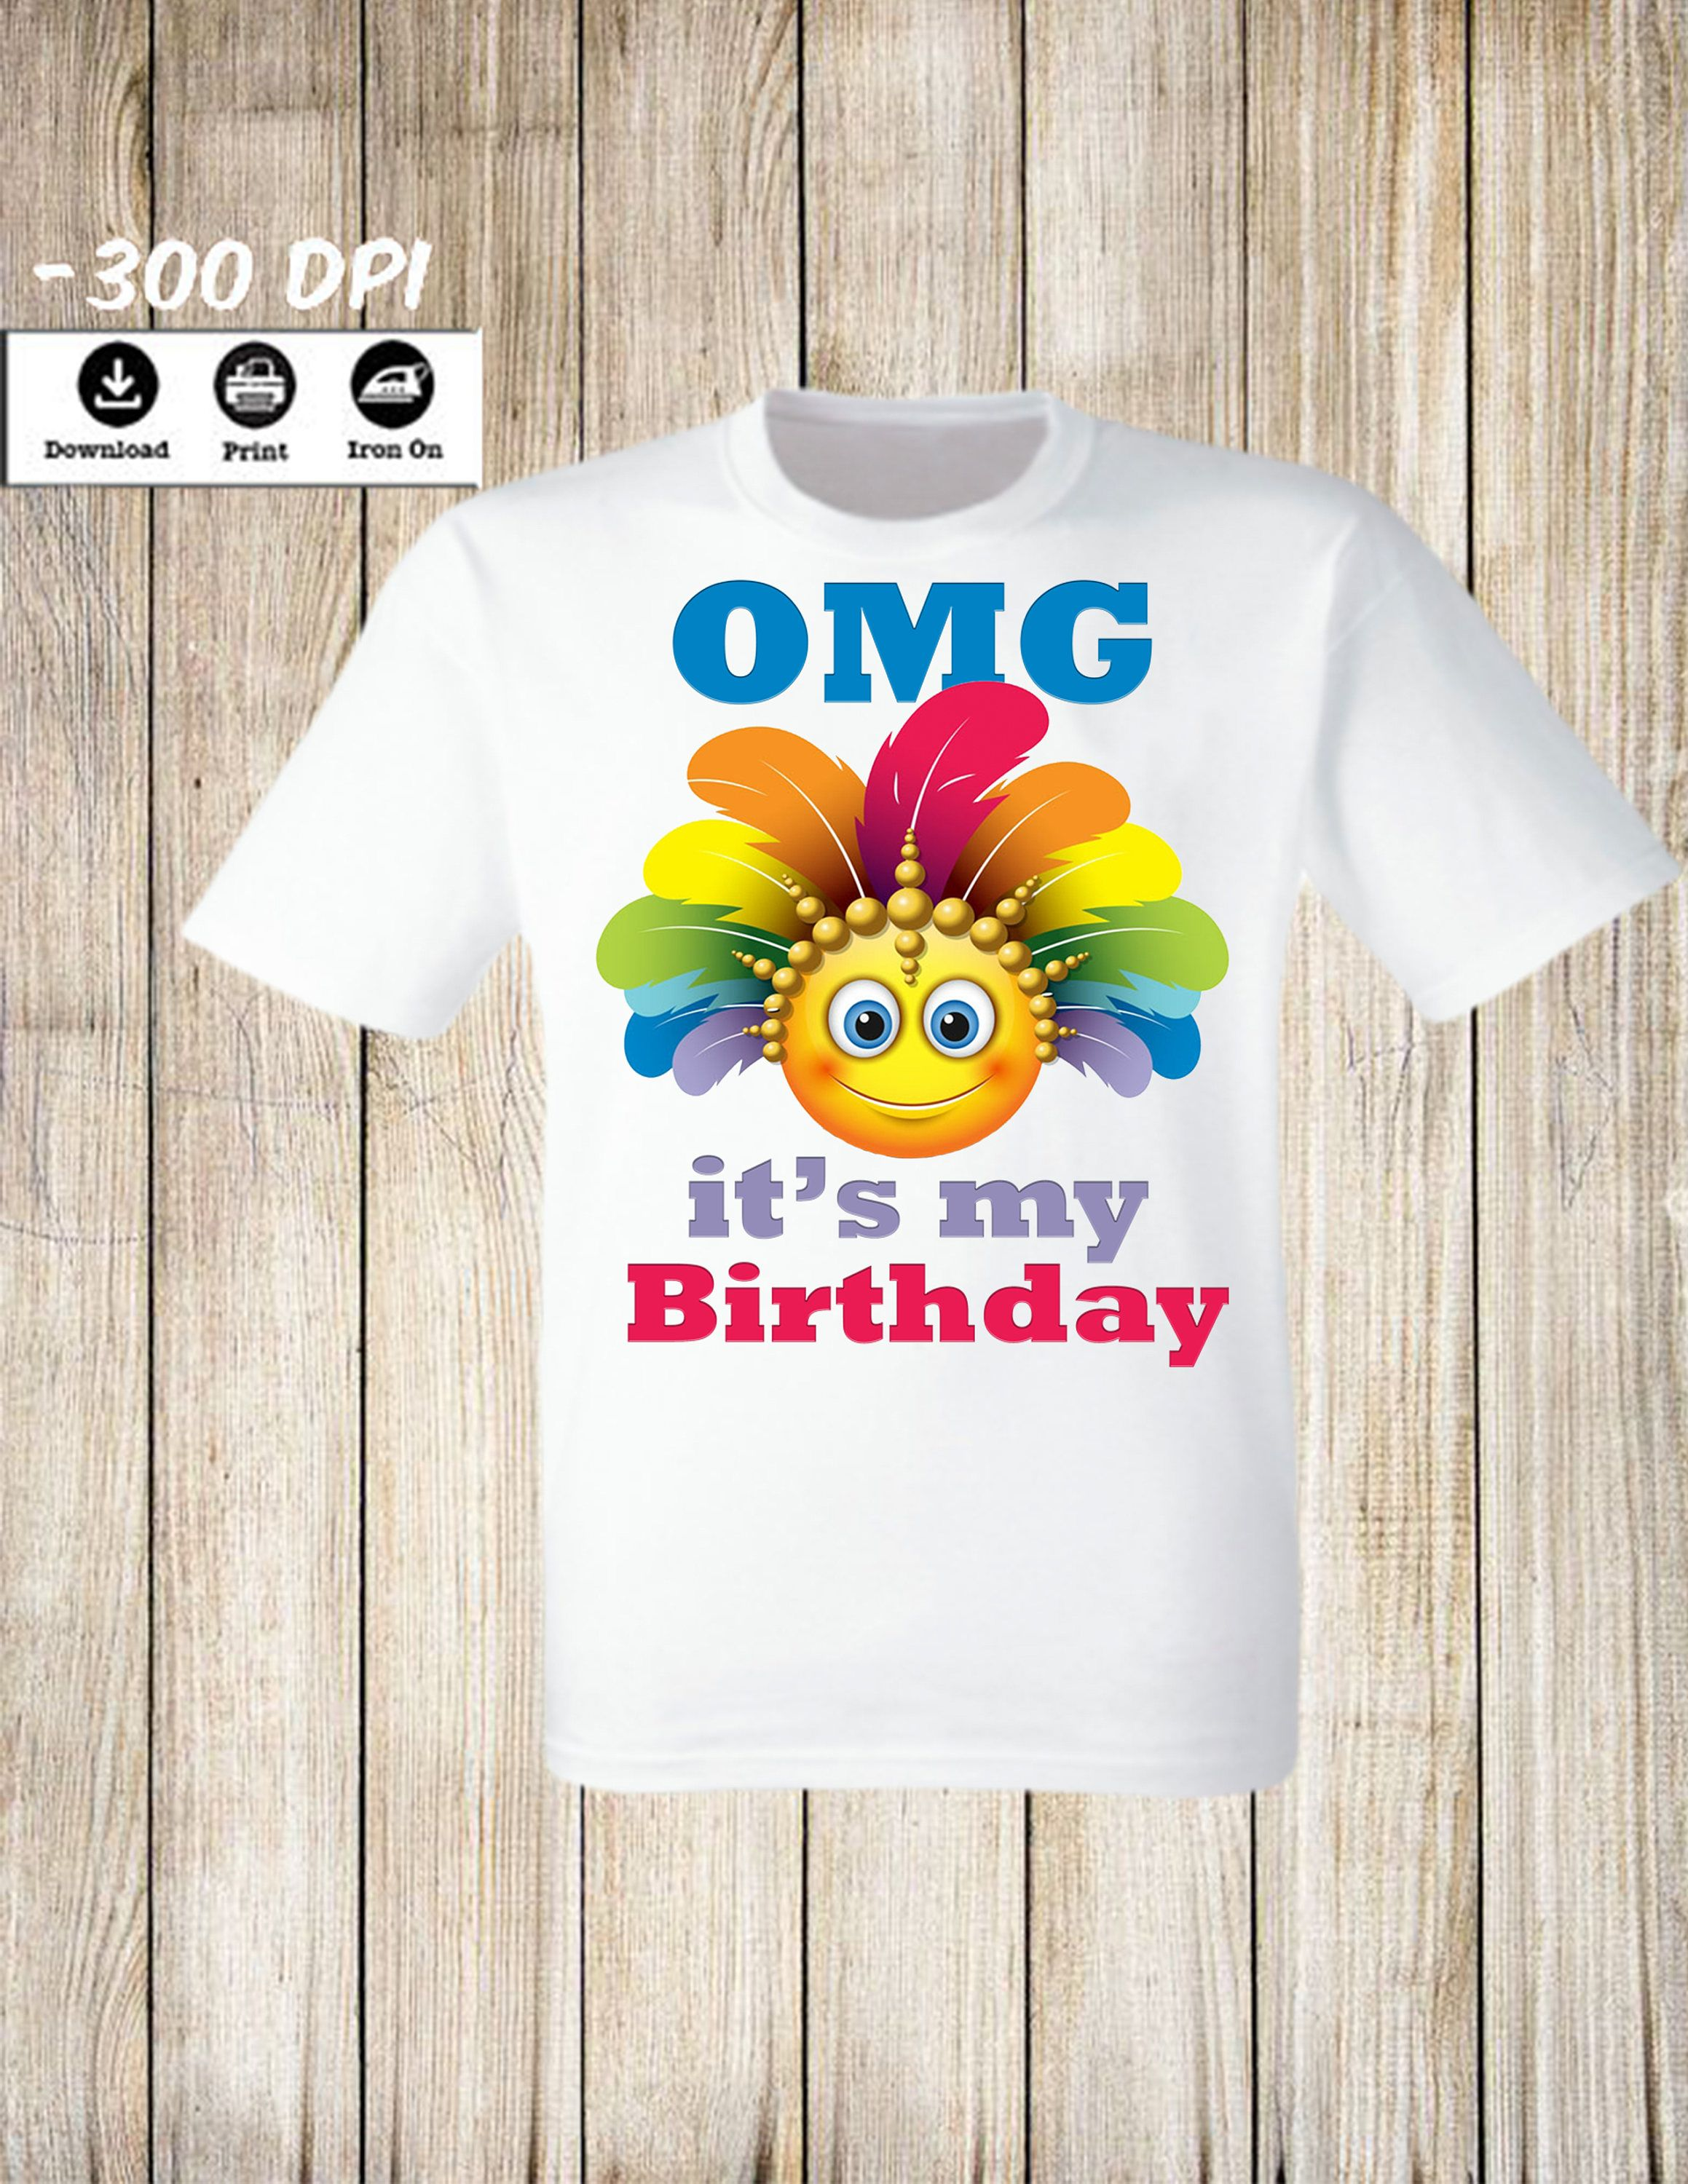 Emoji Birthday Party Iron On Transfer Printable Girl Or Boy T Shirt Decoration Instant Digital Download By Lollypopdigitalstore